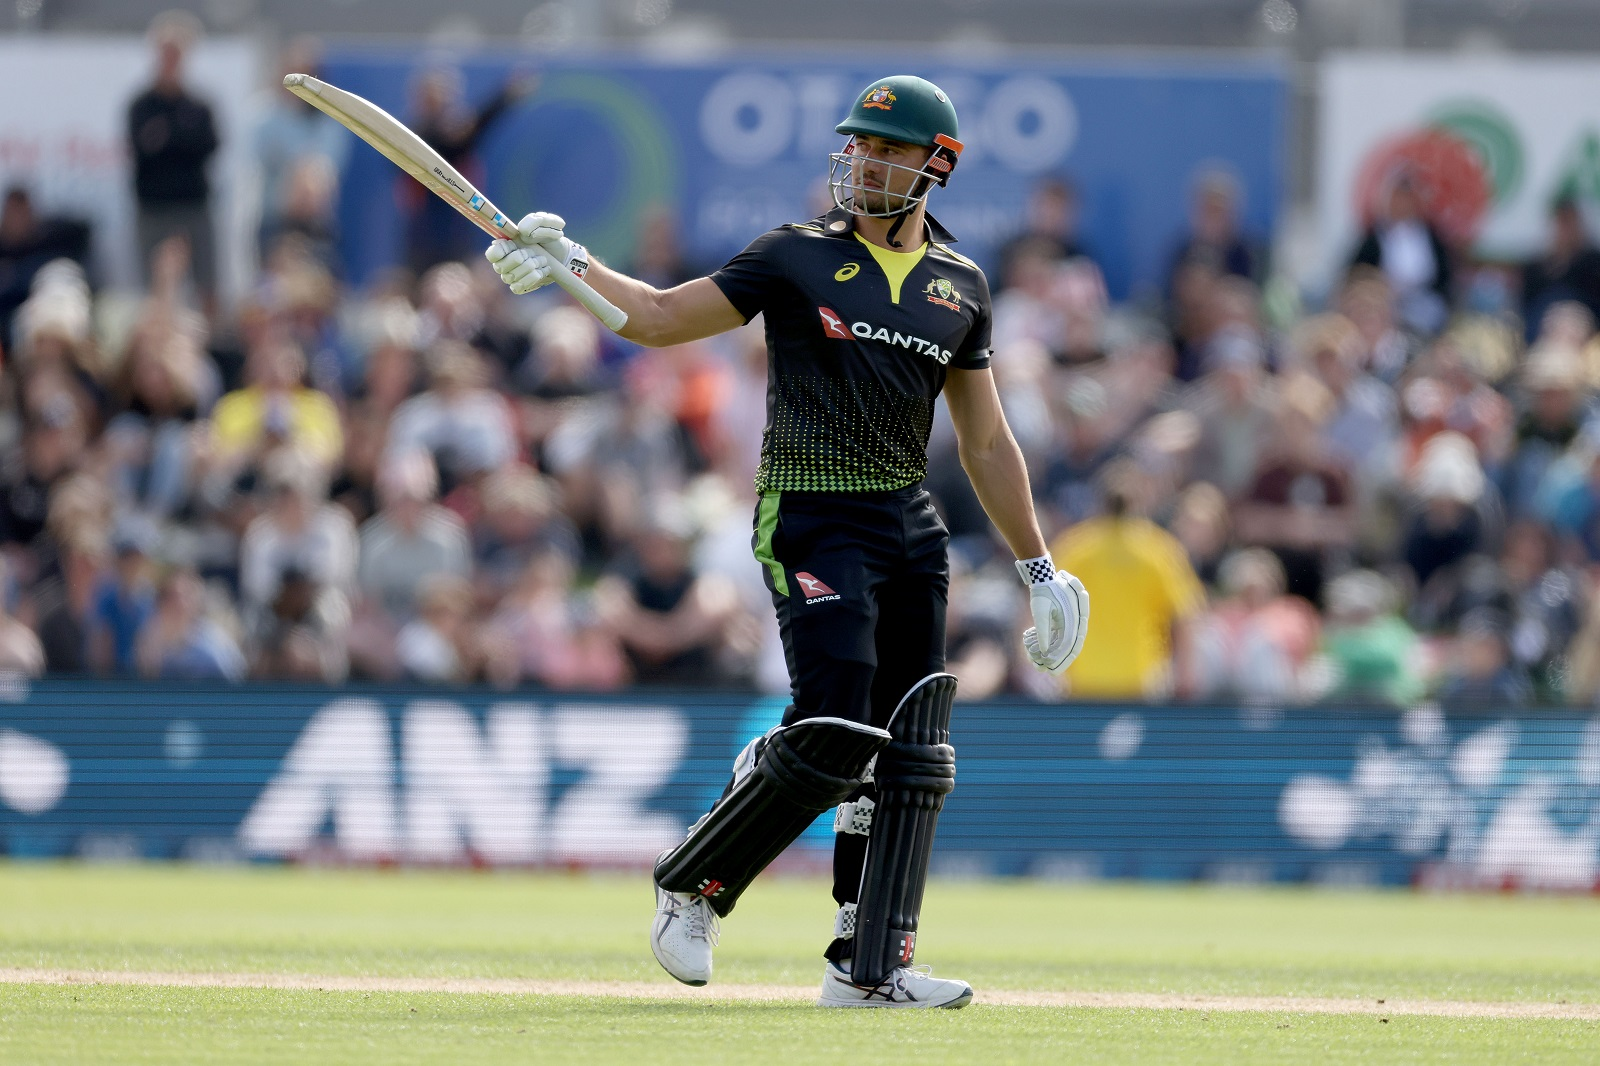 STOINIS NOW T20 WORLD NO.4